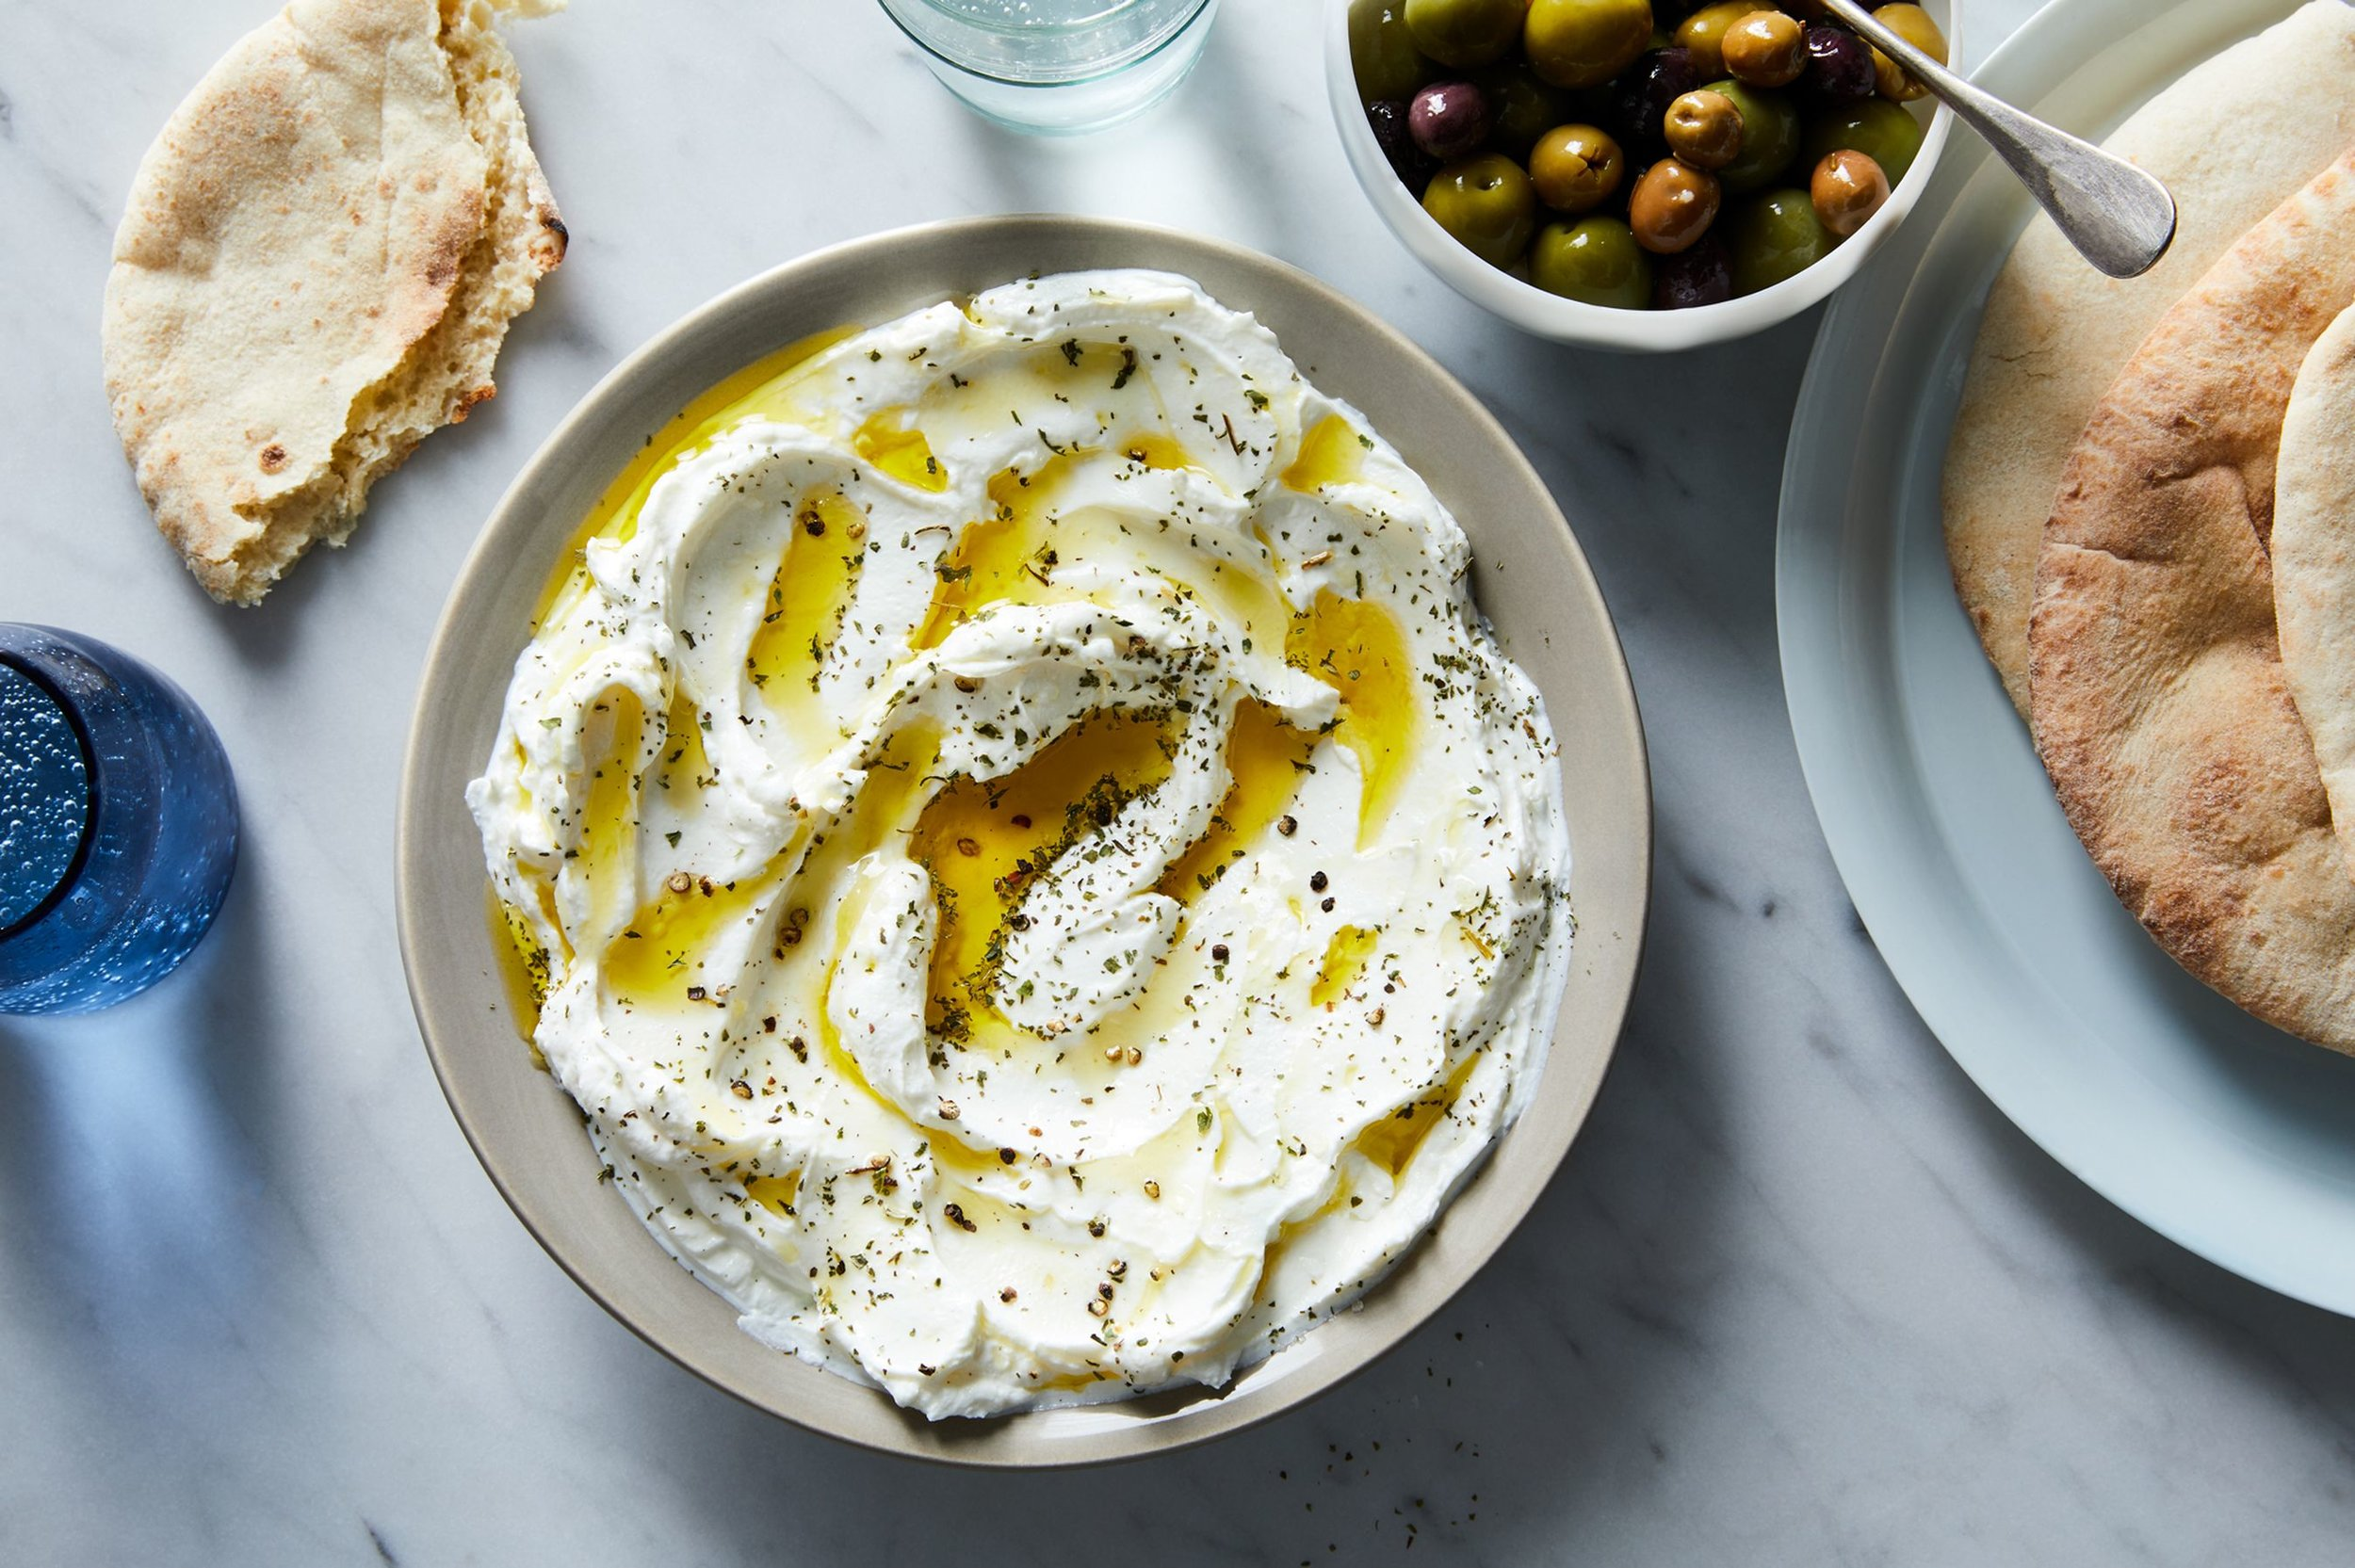 My Grandma's Garlicky Labneh Is the Ketchup to My Fries, the Butter to My Bread - Food52